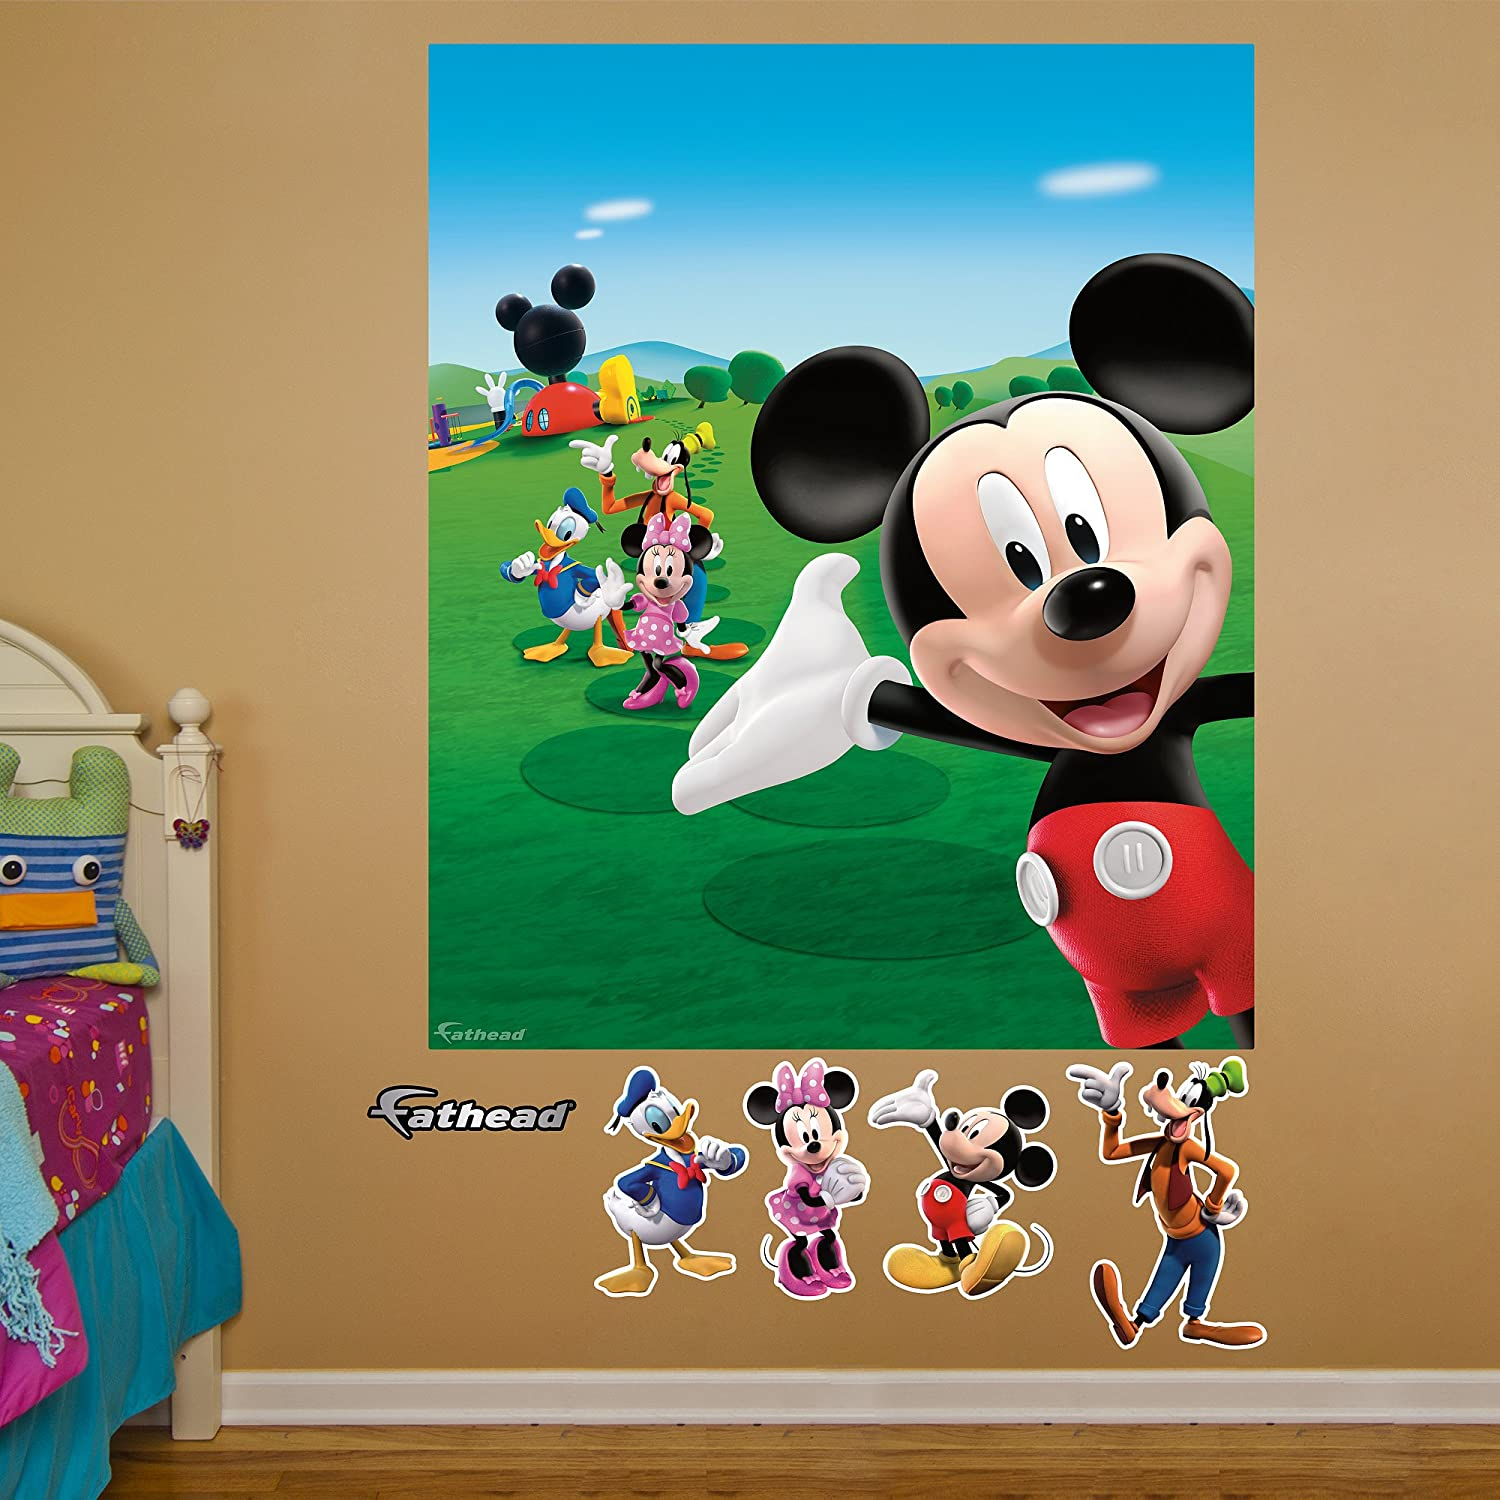 Amazon.com: FATHEAD Mickey Mouse Clubhouse Mural Graphic Wall ...